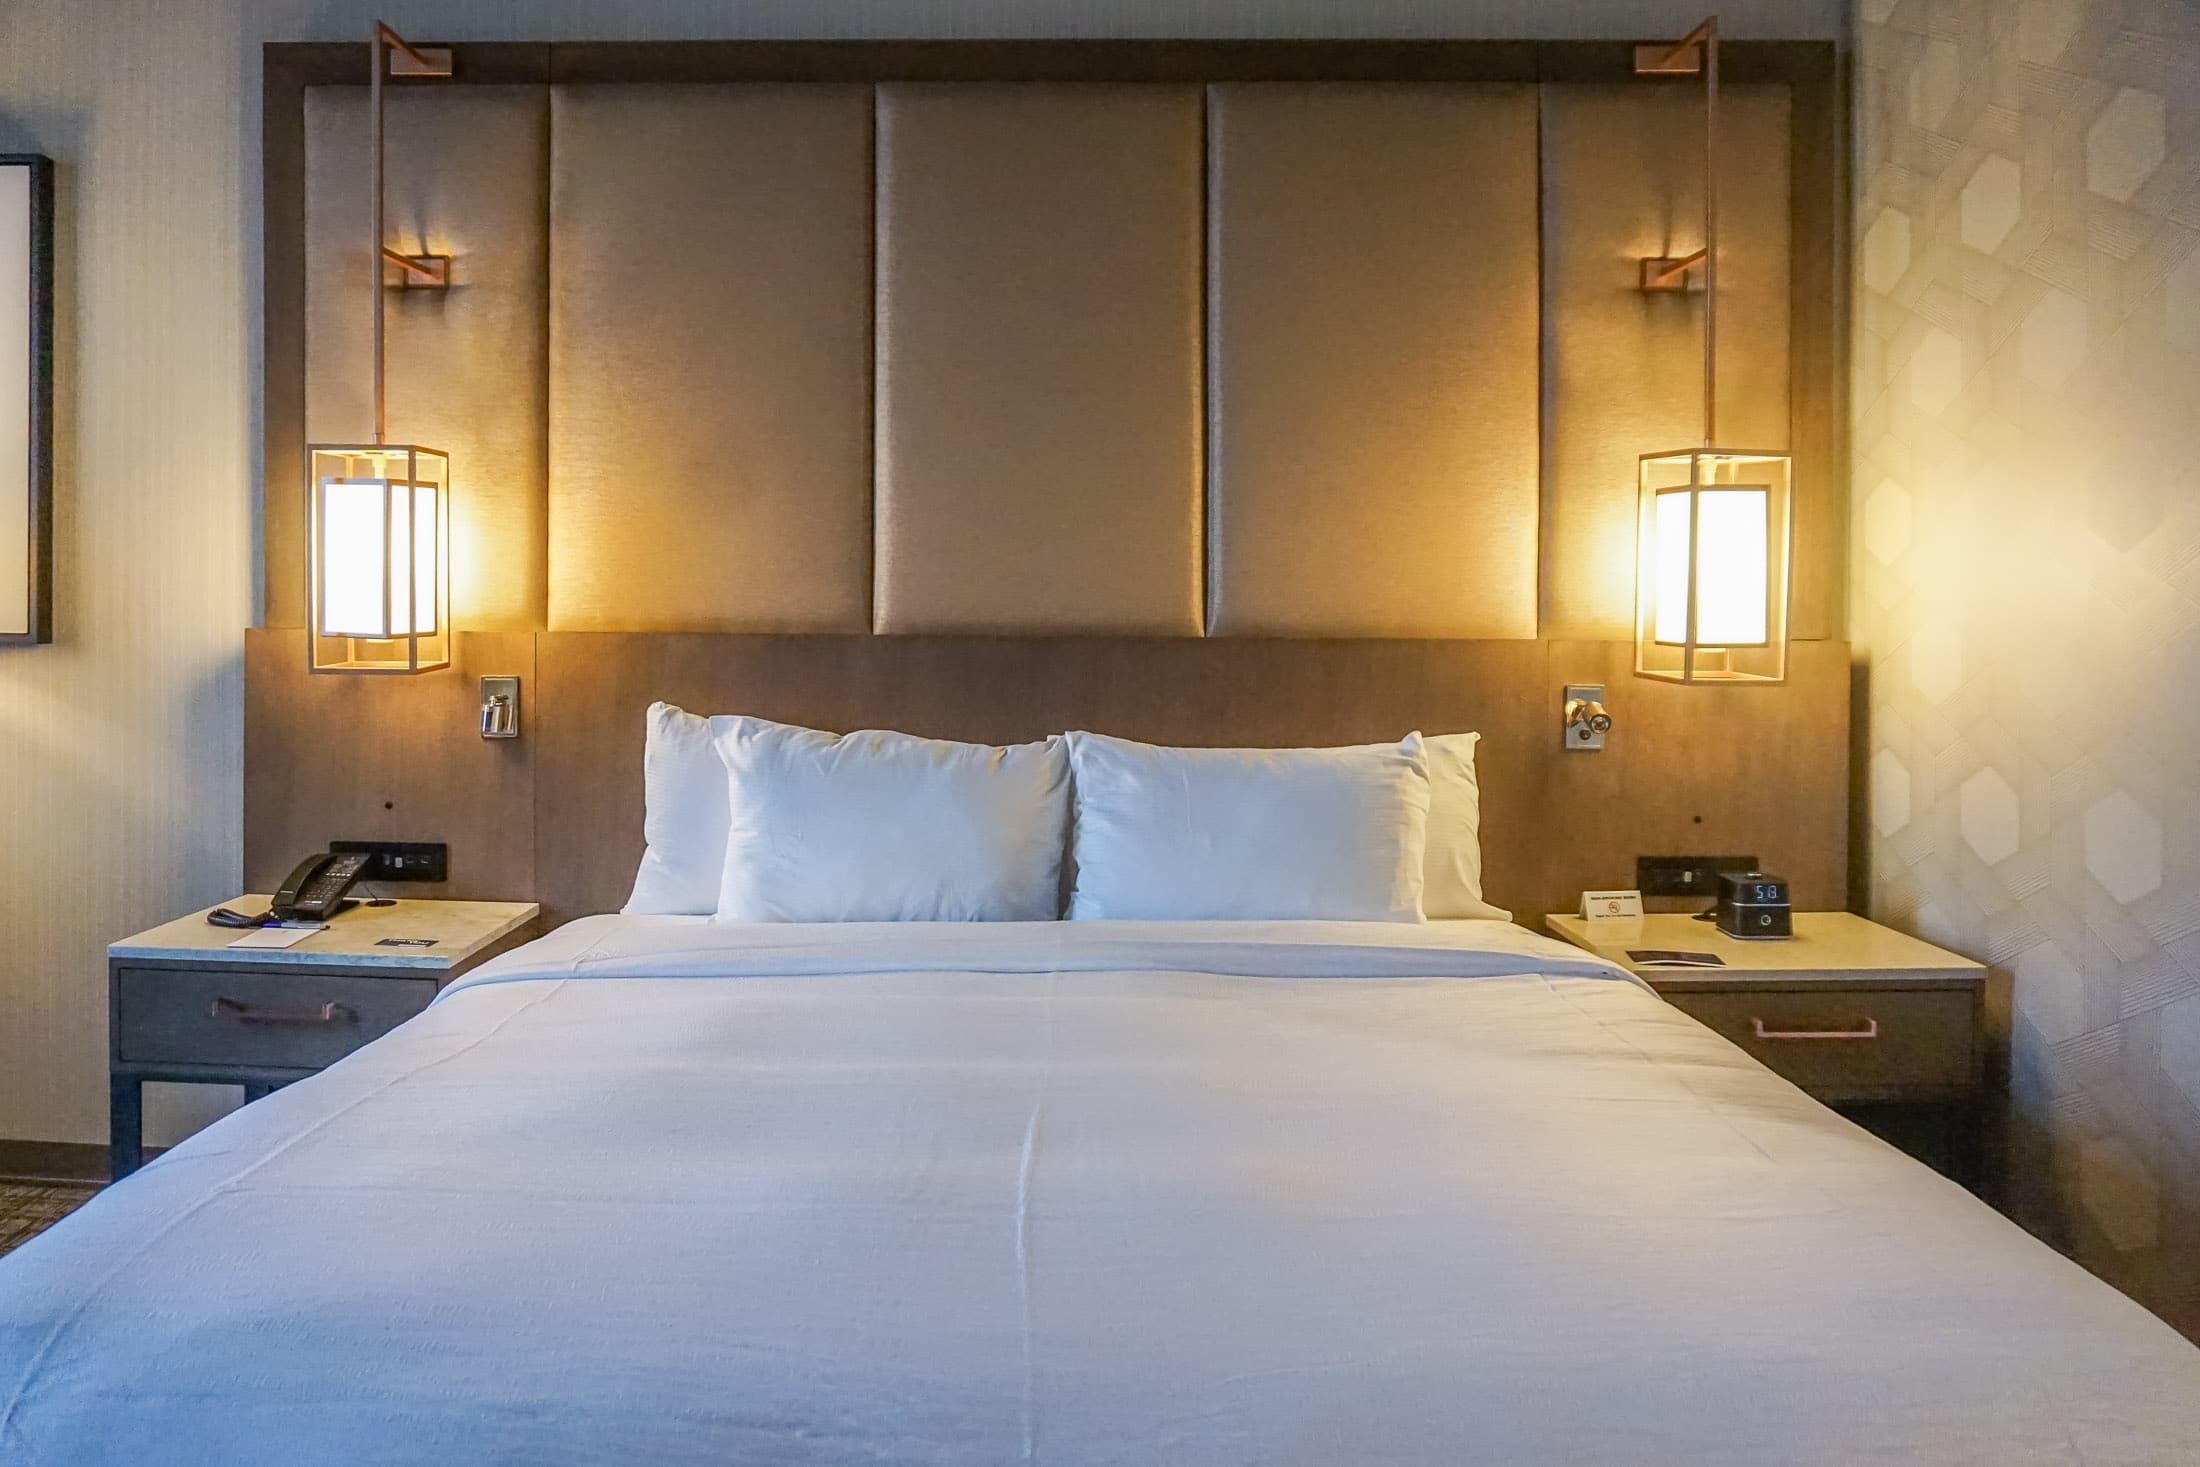 H Hotel near LAX has comfortable beds